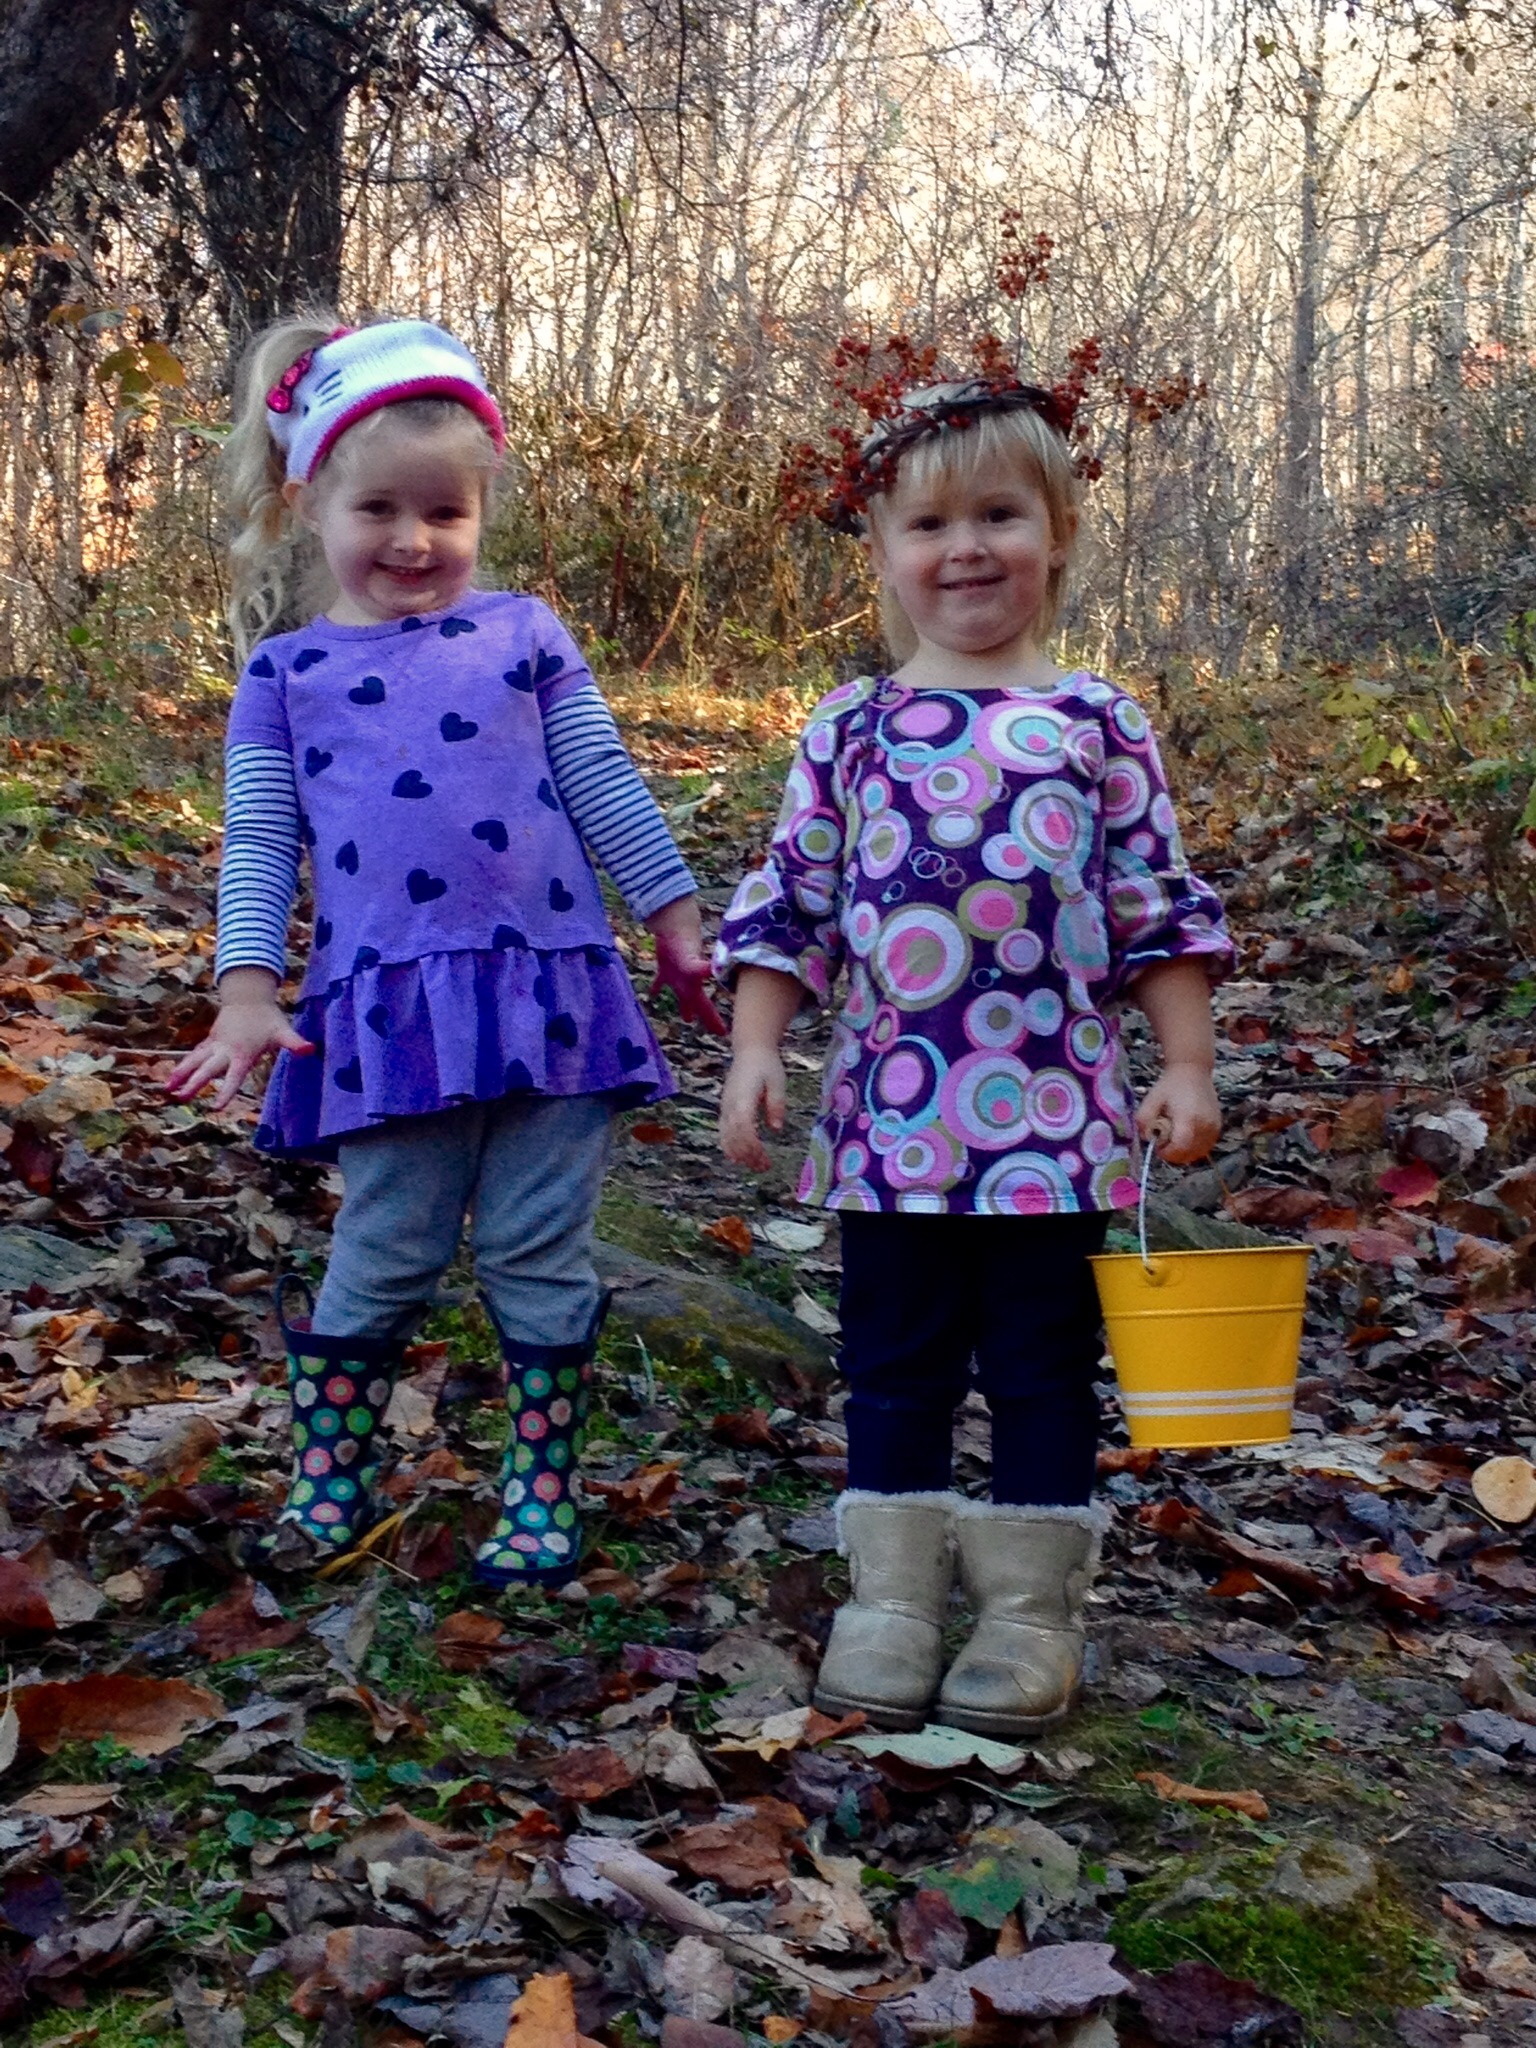 Forest friends gathering leaves for a seasonal craft